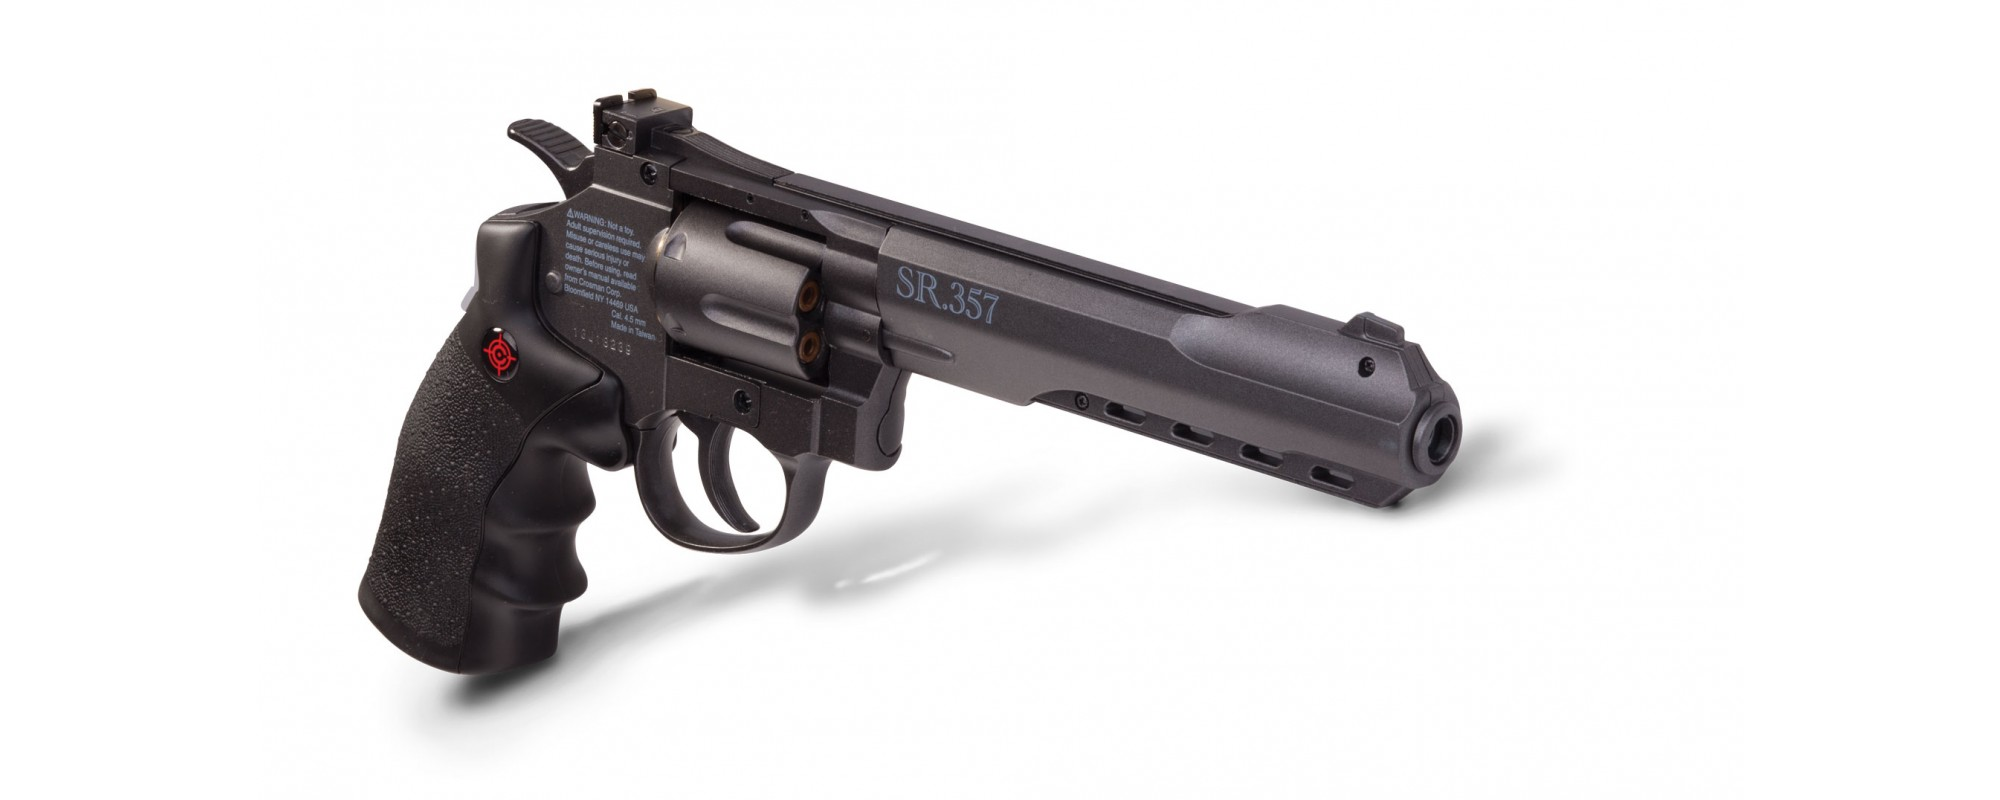 Crosman CRVL357 available from P.B.Dionisio & Co.